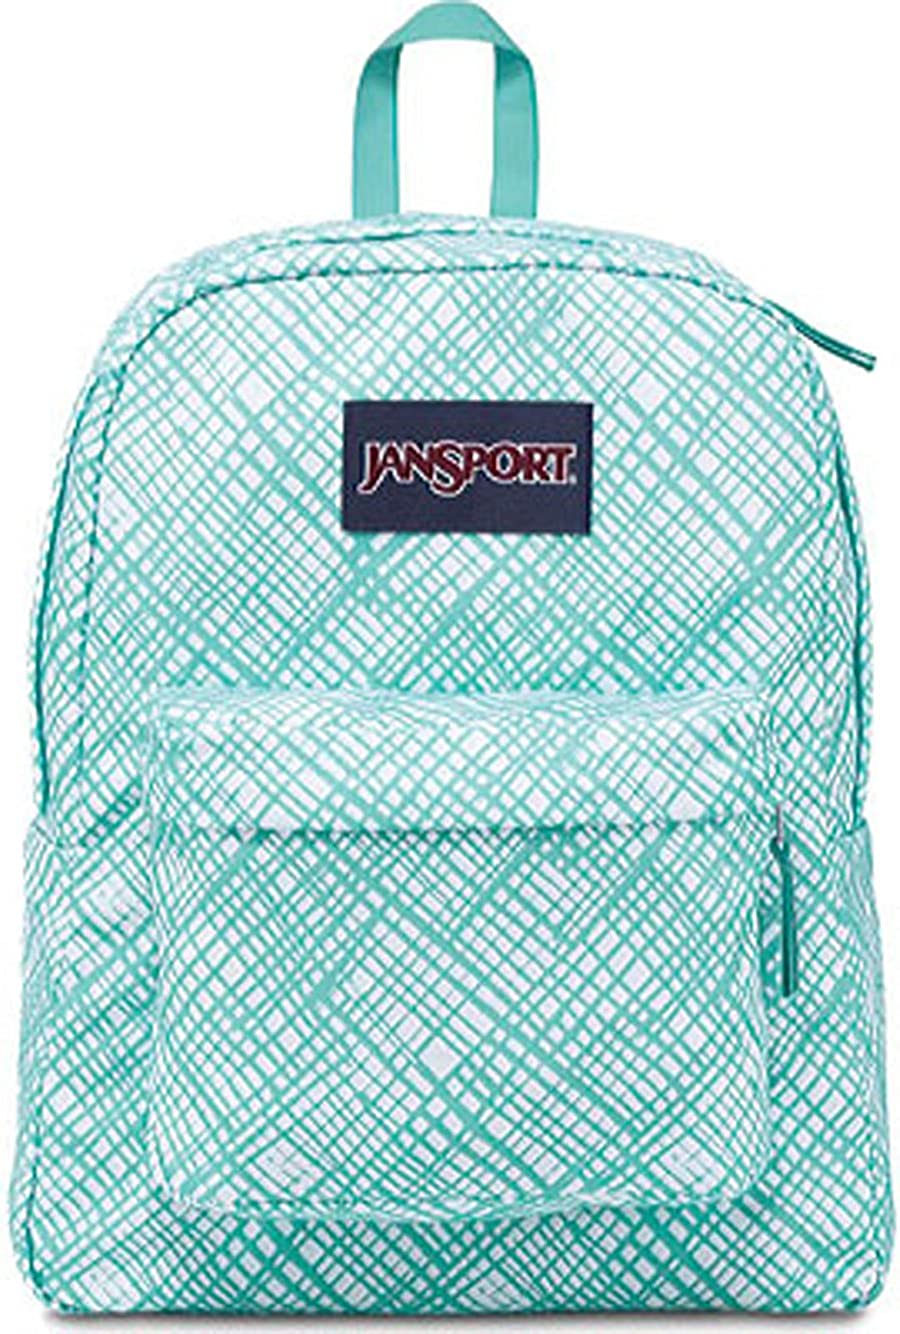 JanSport Superbreak Backpack Aqua Dash Jagged Plaid